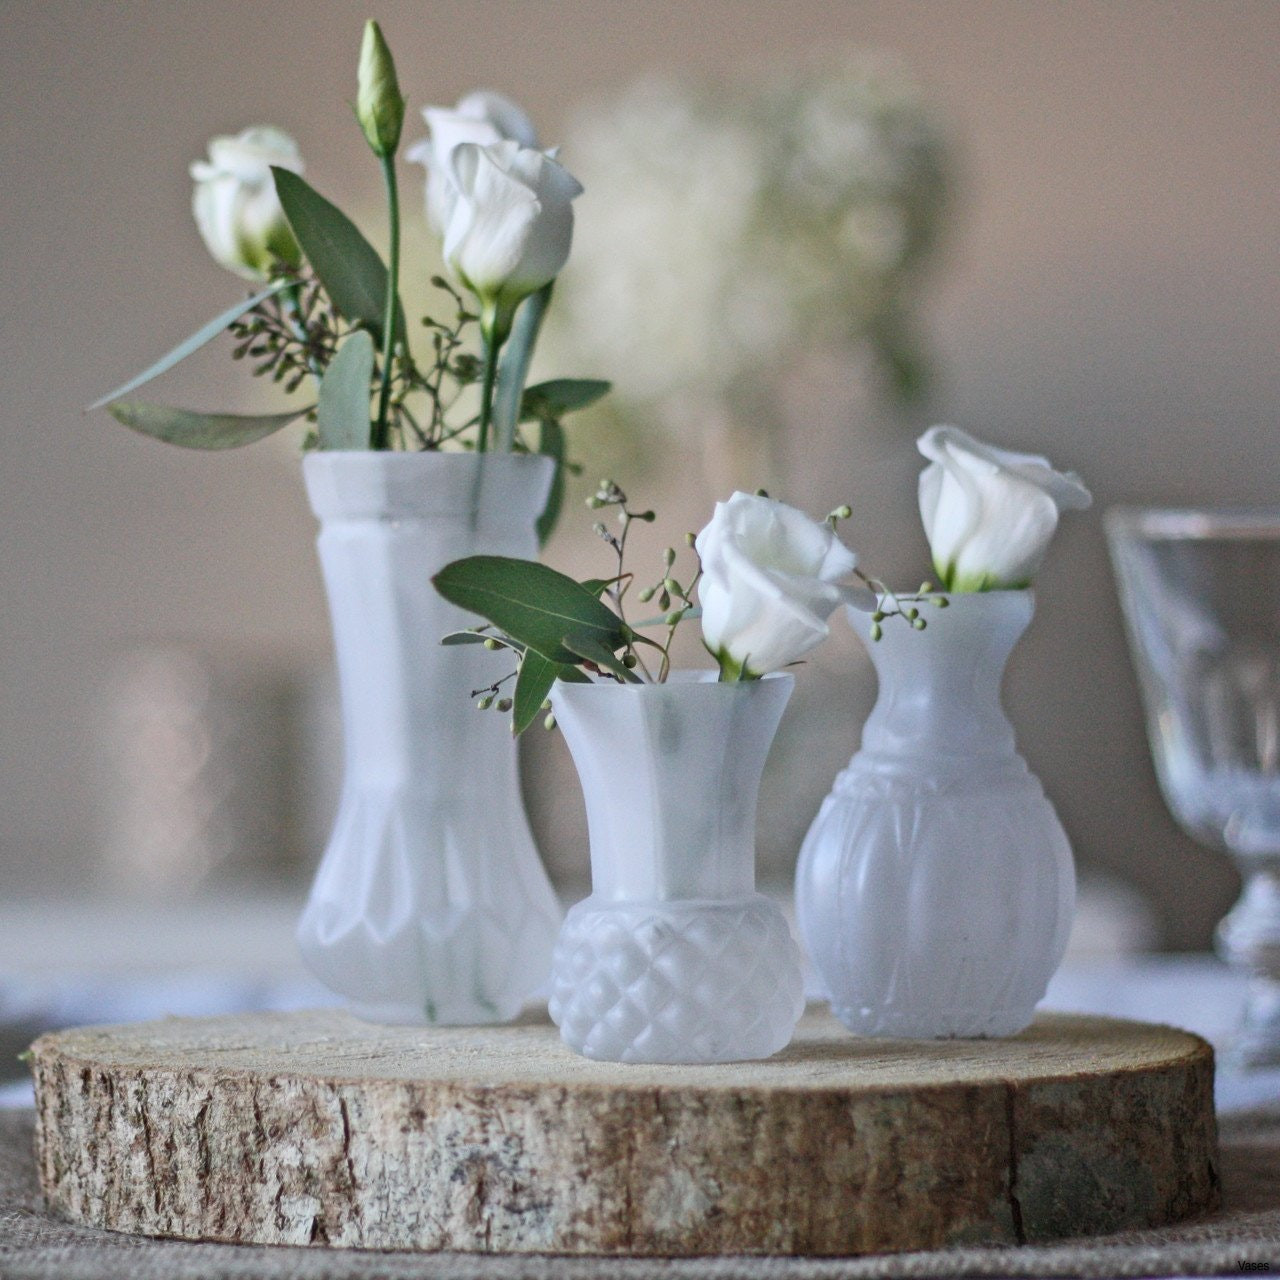 glass vase manufacturers of glass jar vase gallery jar flower 1h vases bud wedding vase with regard to glass jar vase gallery jar flower 1h vases bud wedding vase centerpiece idea i 0d white